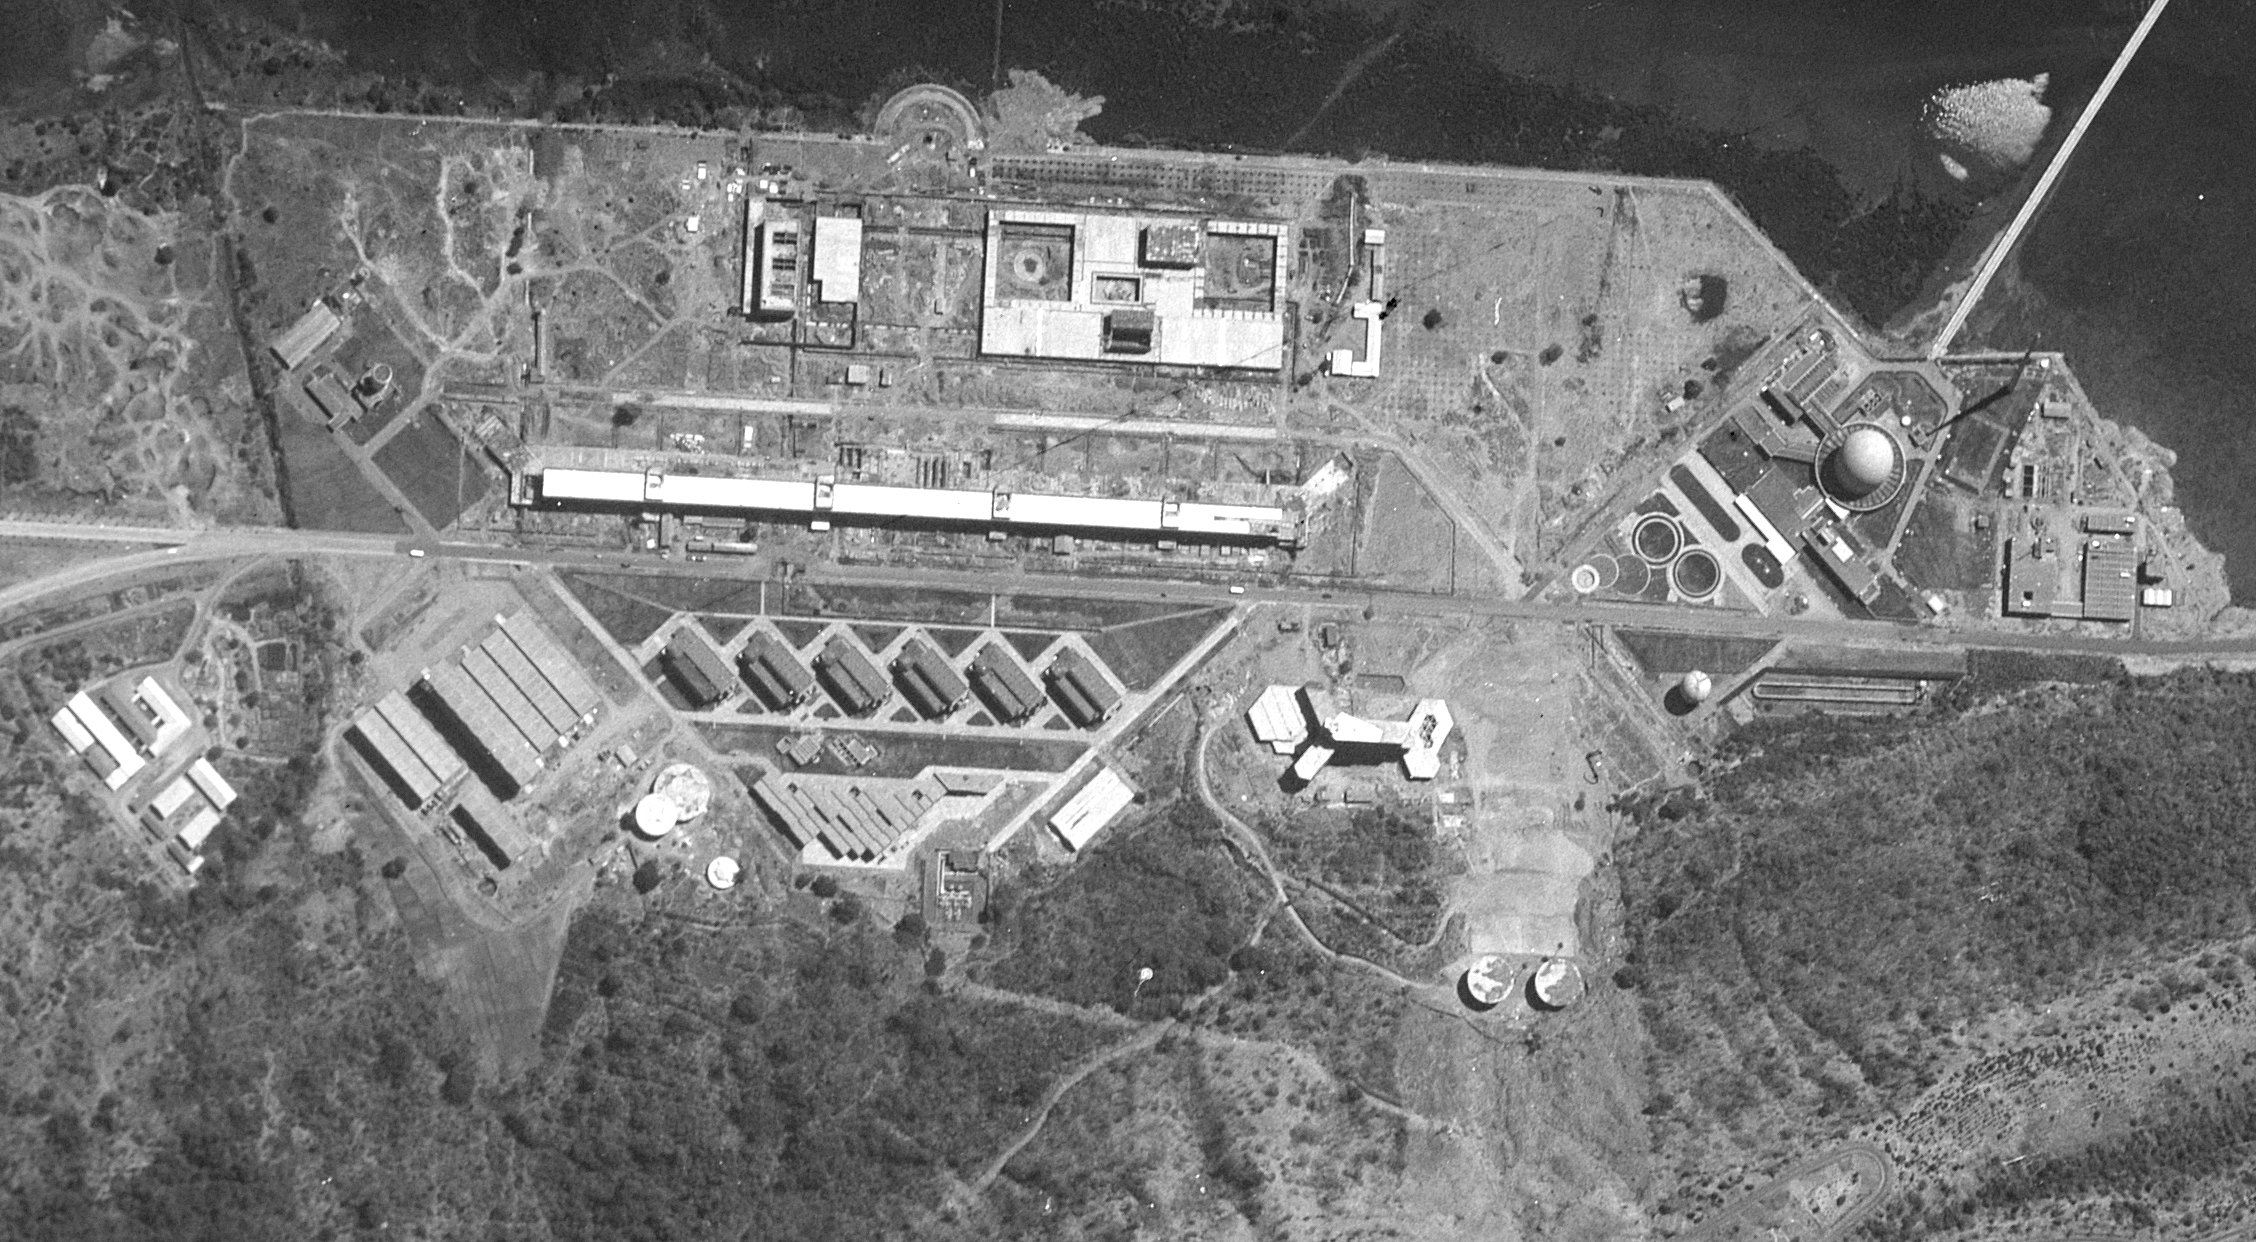 Trombay, the site of India's first reactor (Aspara) and a plutonium reprocessing facility, as photographed by a KH-7/GAMBIT satellite on February 19, 1966.